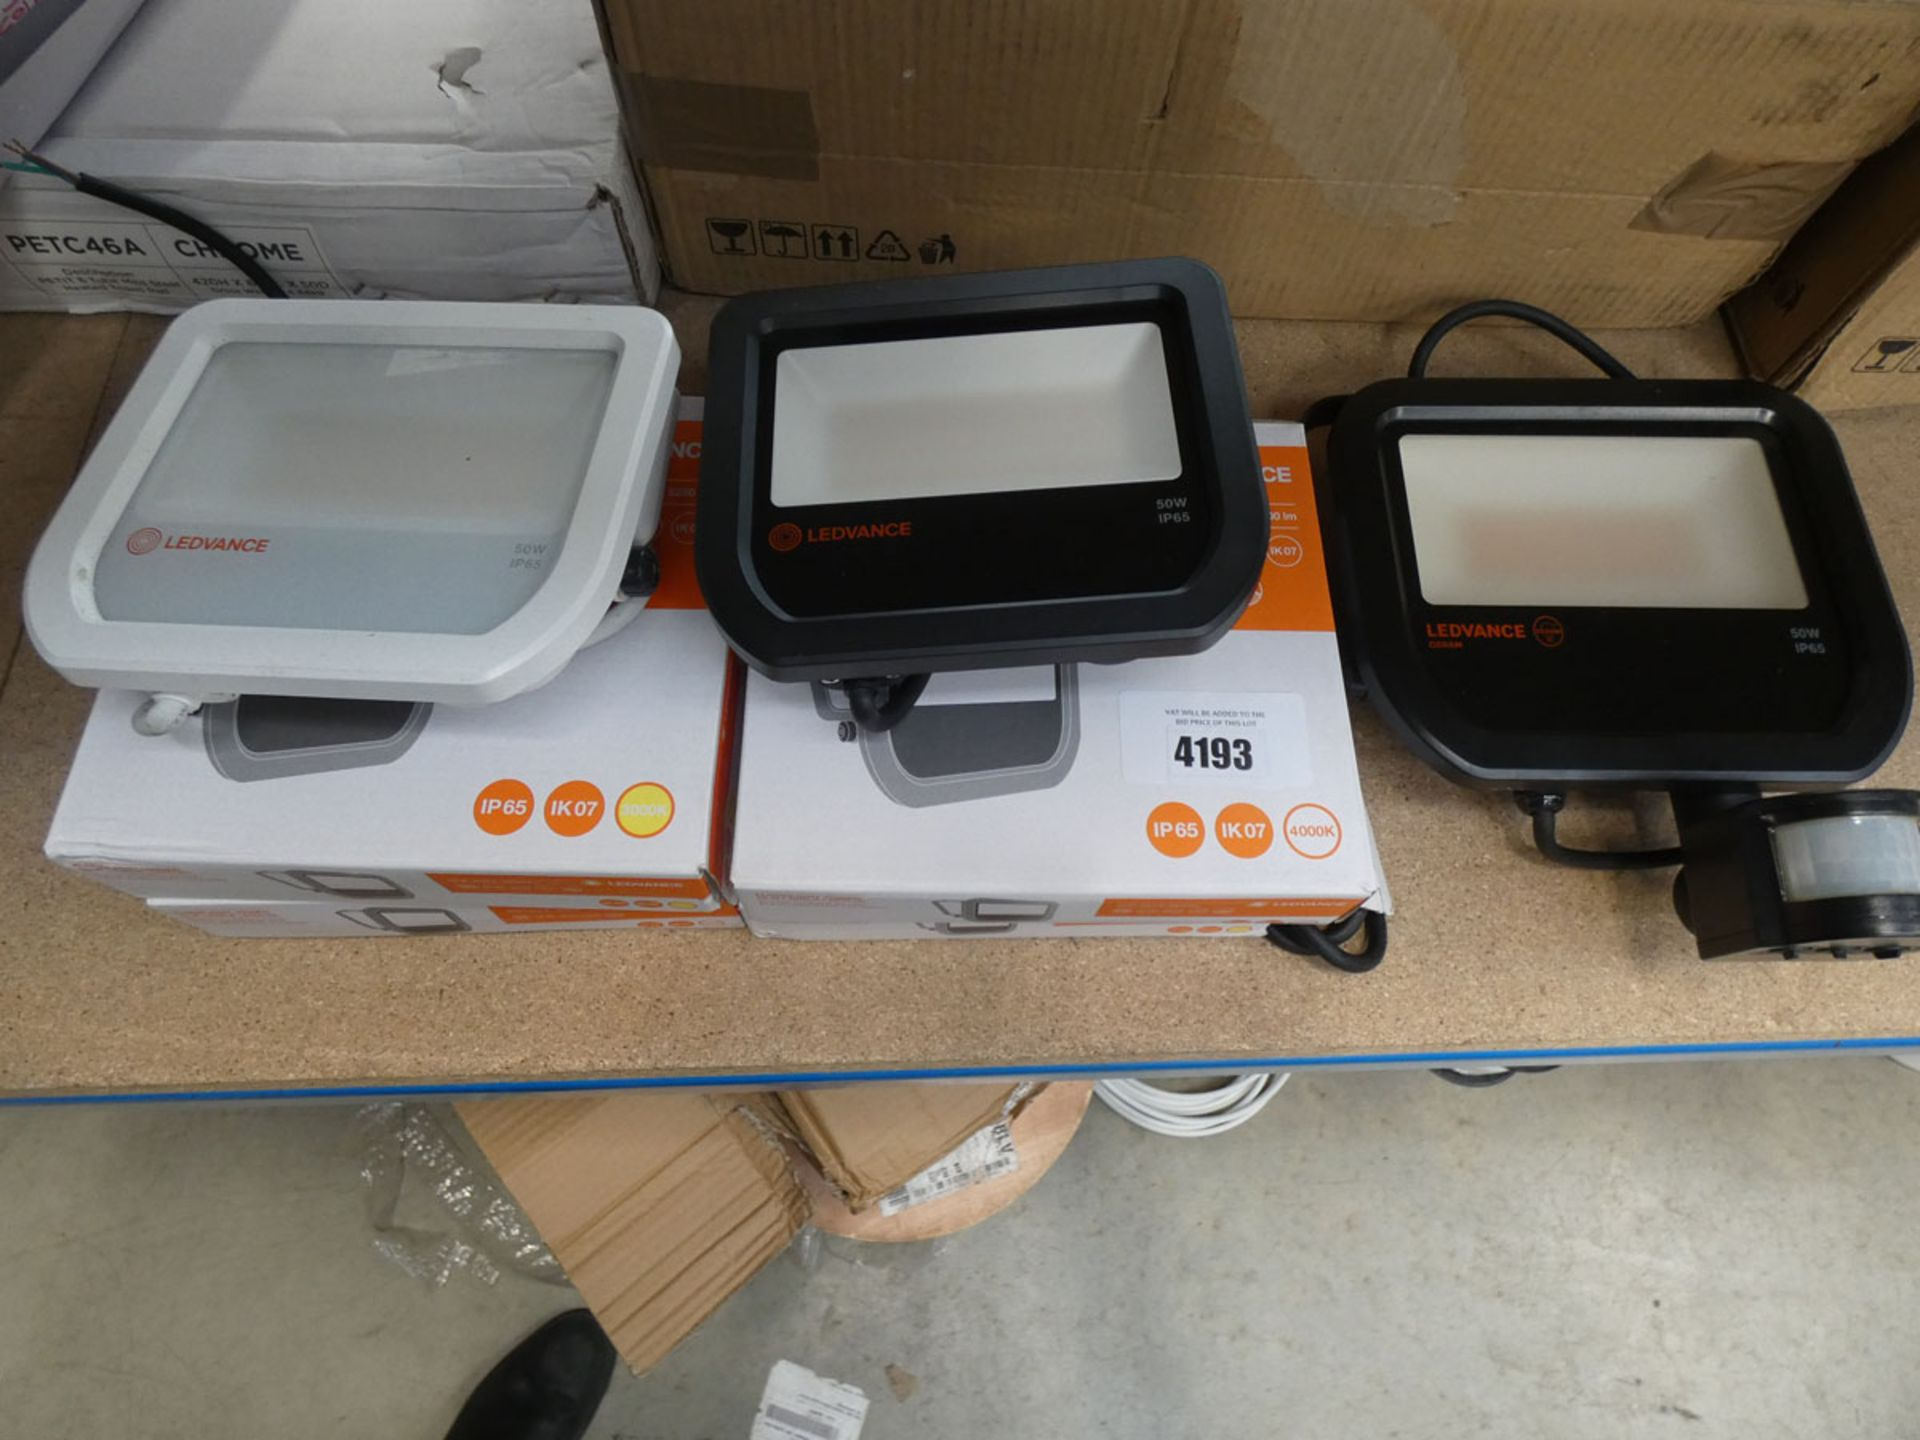 4 boxed and 3 unboxed Ledvance floodlights